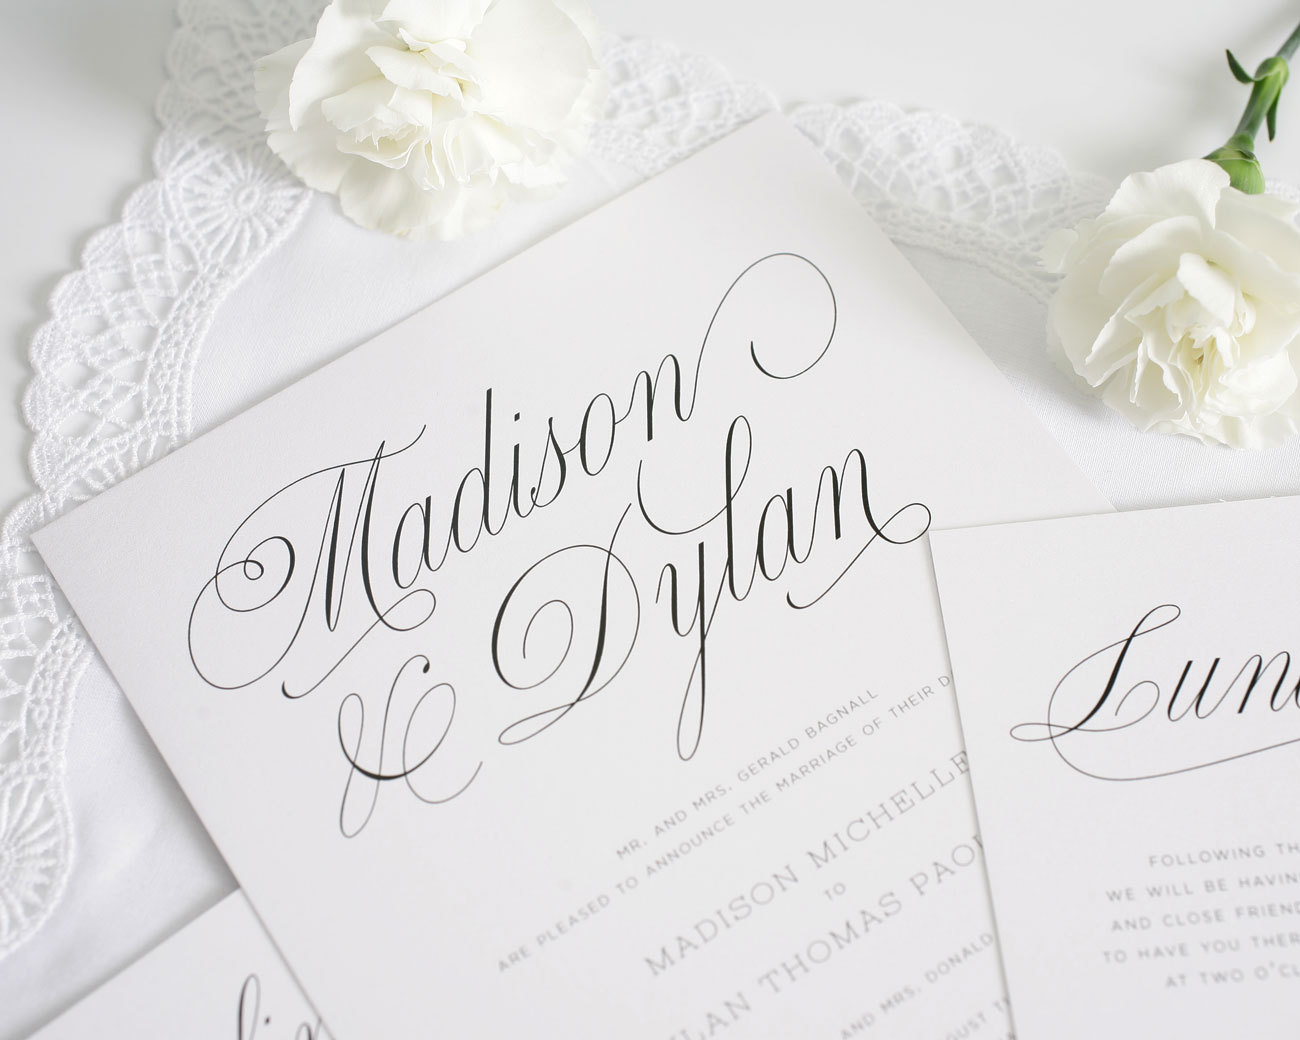 Need help with this Script font